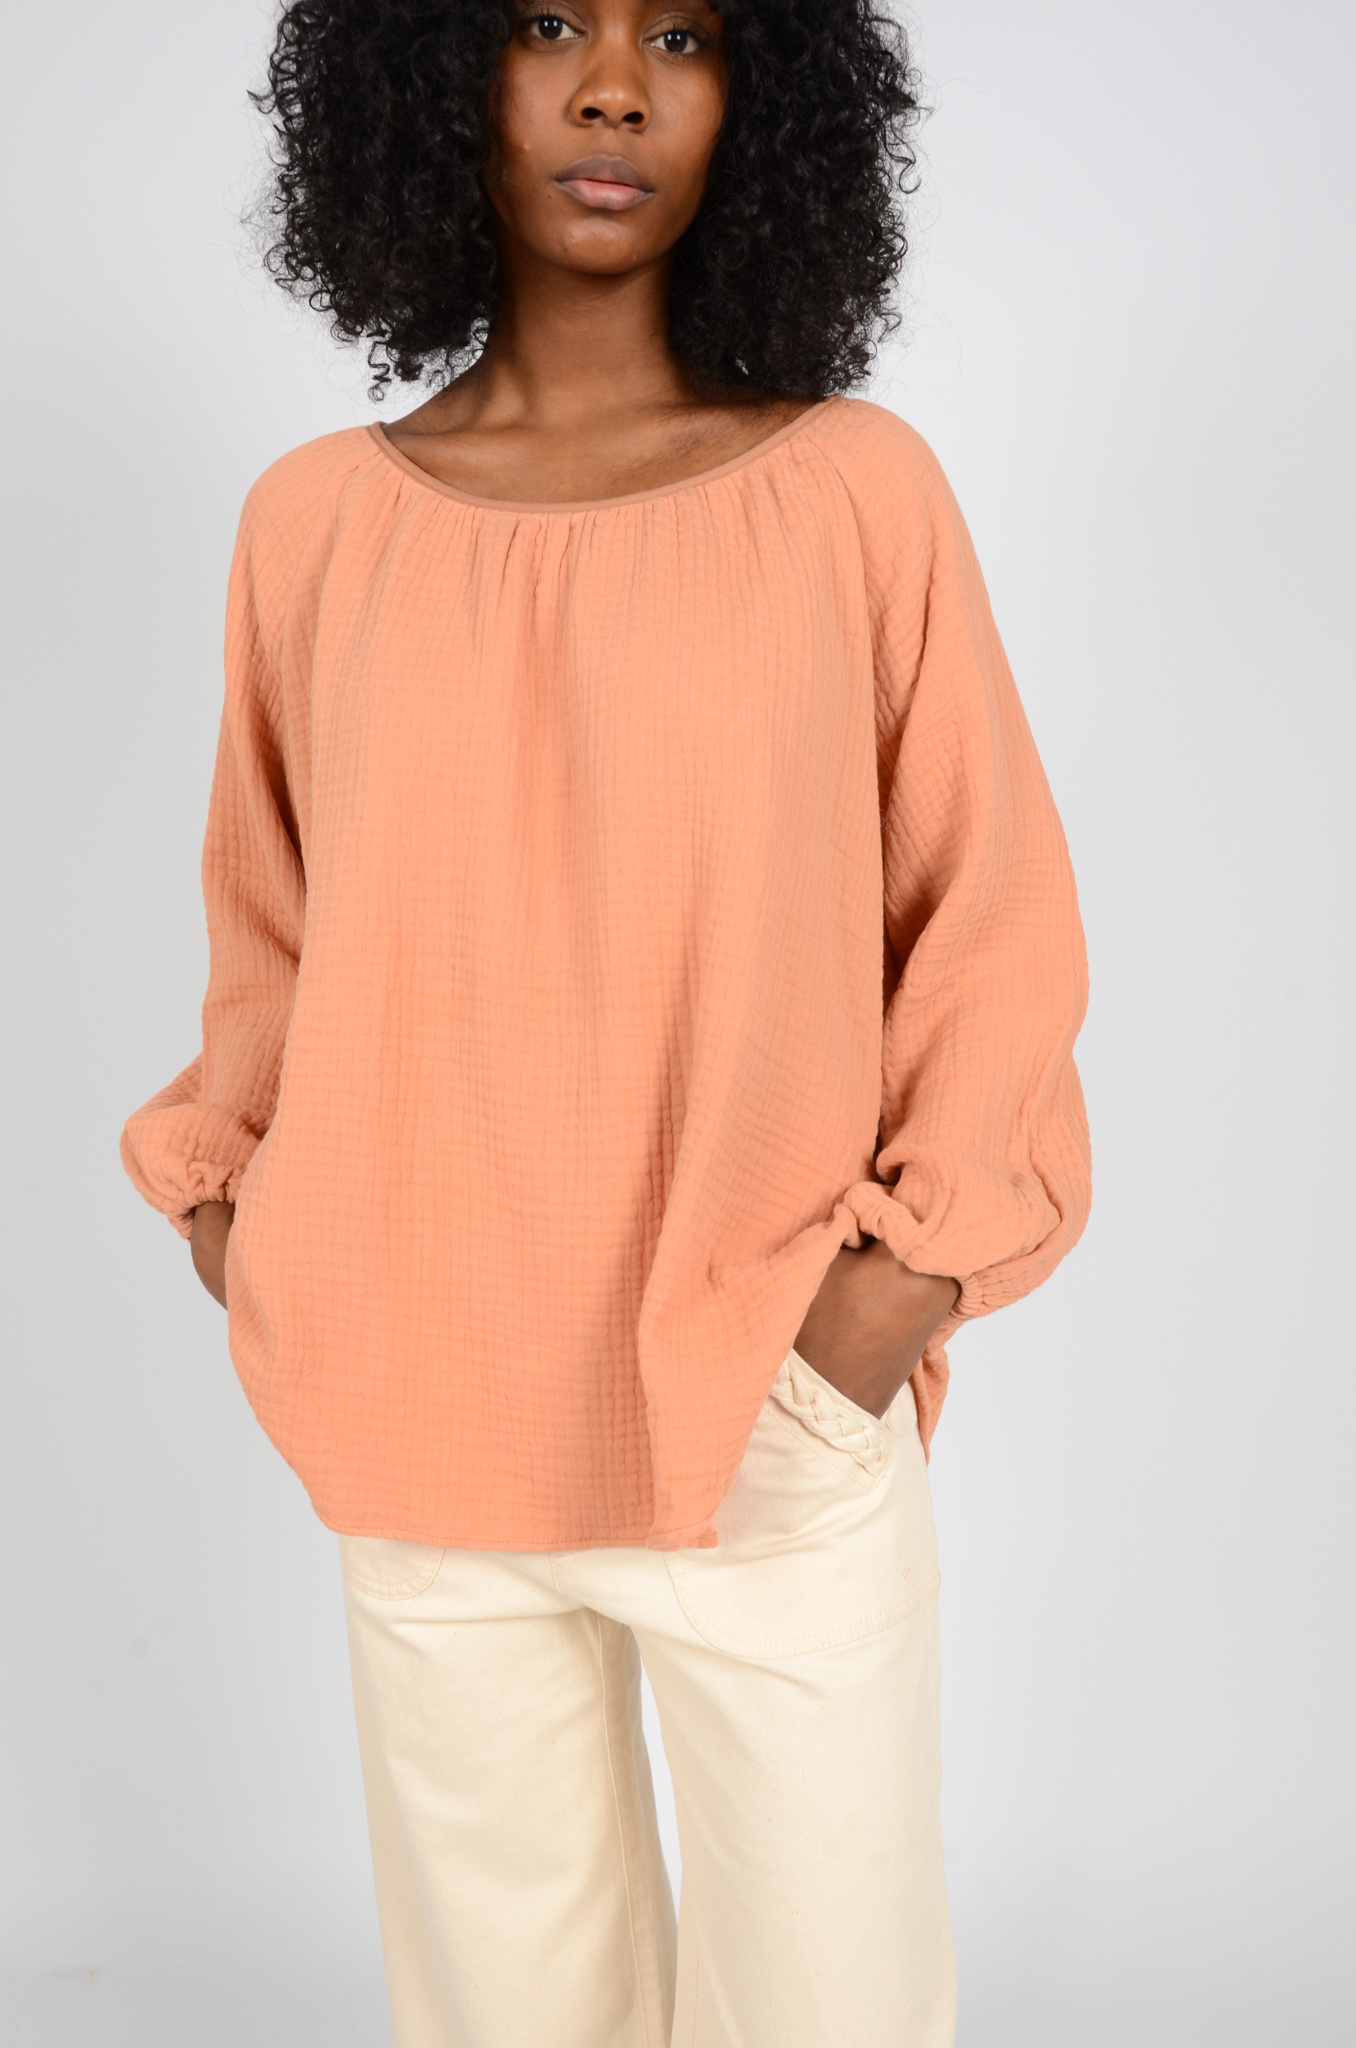 MORNING BLOUSE IN PEACH-2